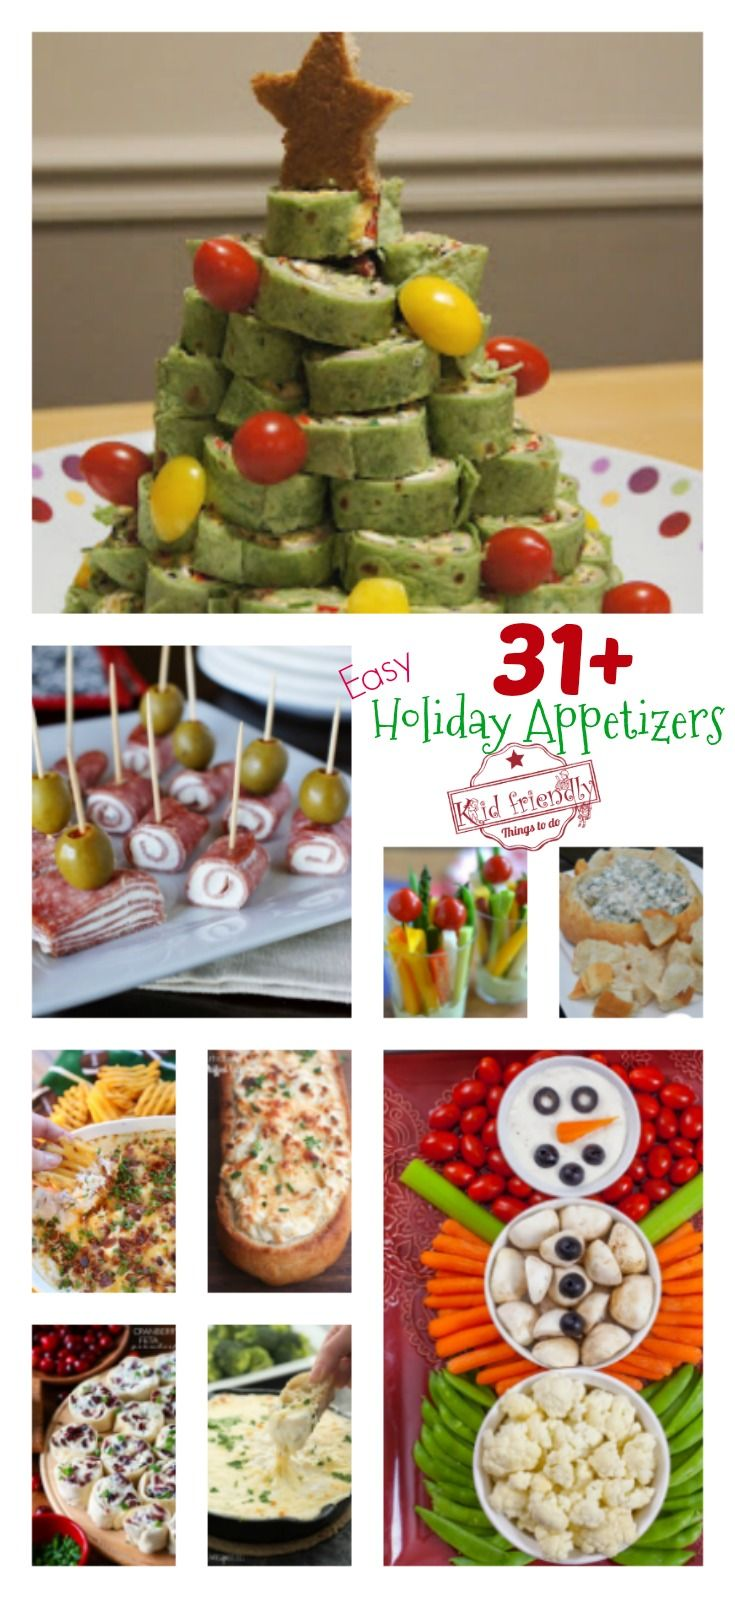 Over 31 Easy Holiday Appetizers to Make | Kid Friendly Things To Do